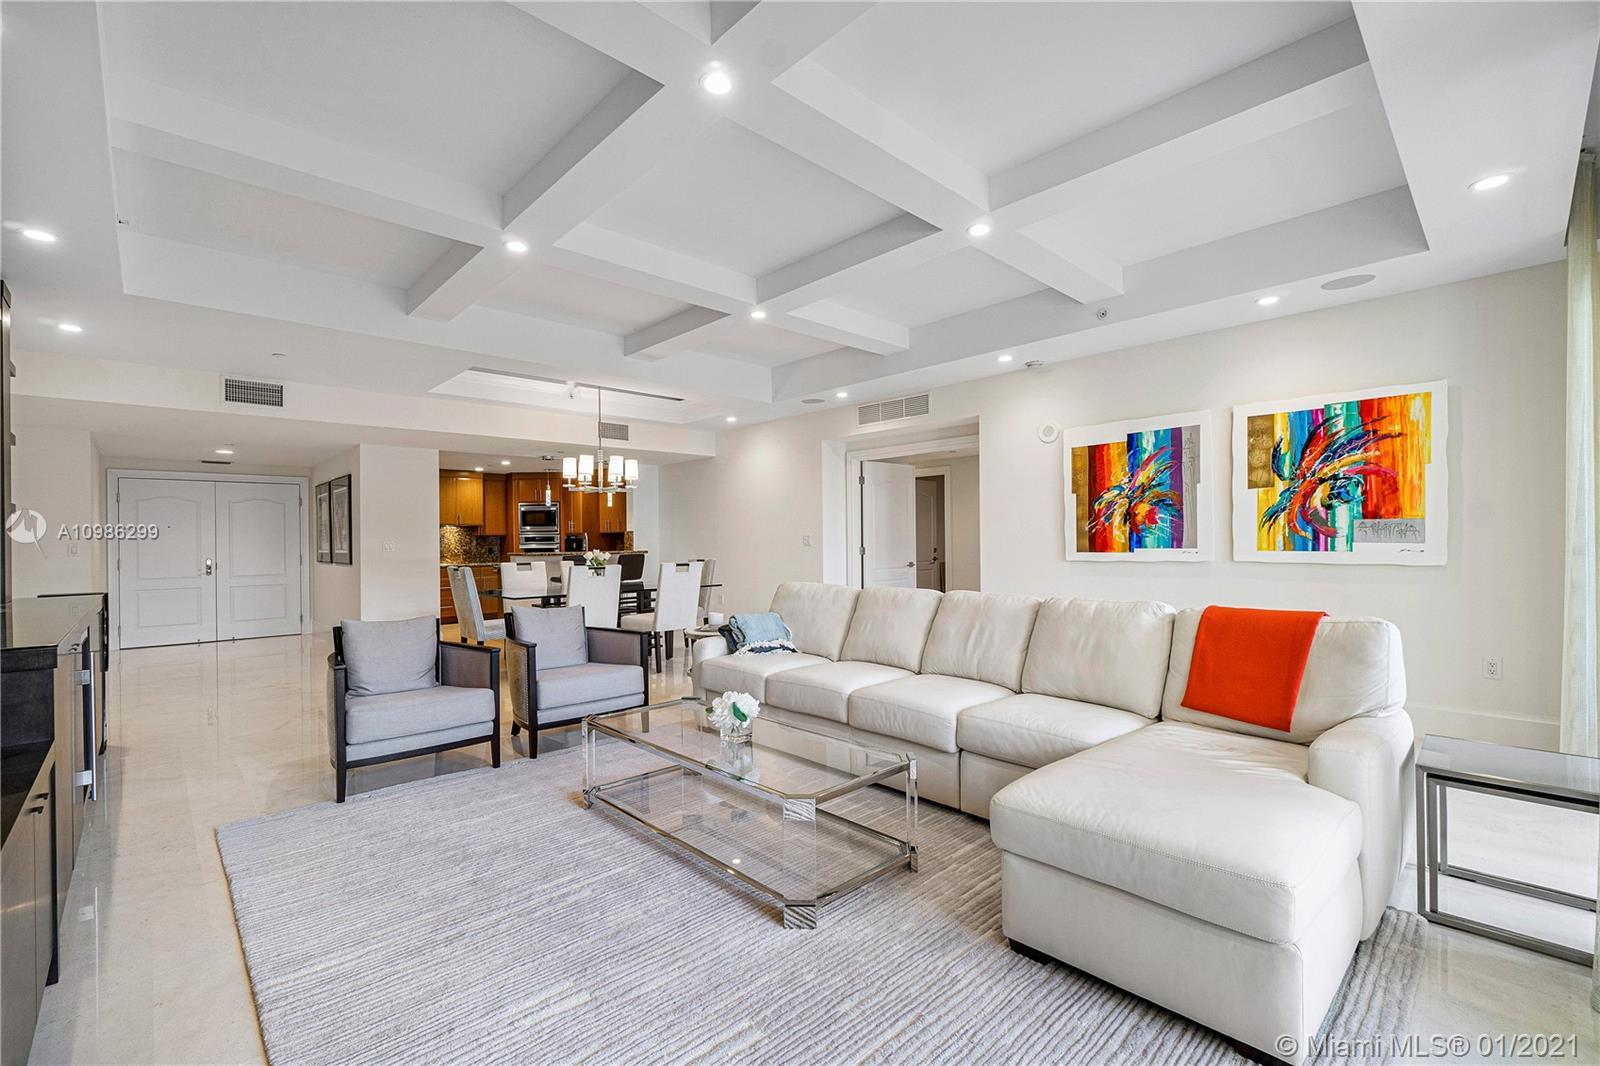 The epitome of elegance and sophistication in the heart of downtown east Boca Raton. Lower PH10 stun